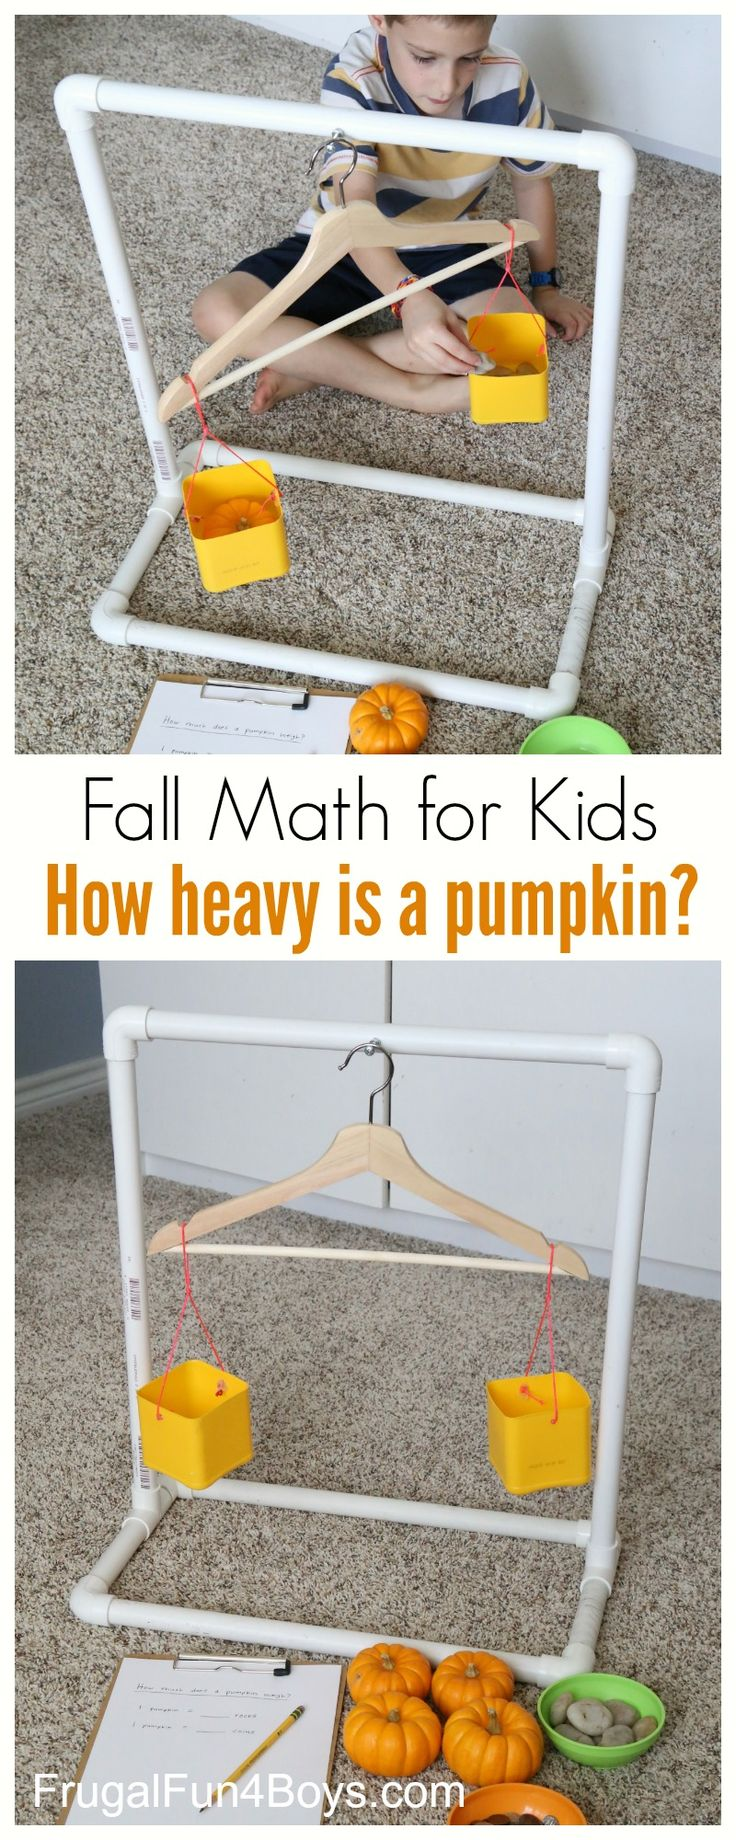 Fall Math for Kids:  How Heavy is a Pumpkin? Build a PVC balance for comparing…